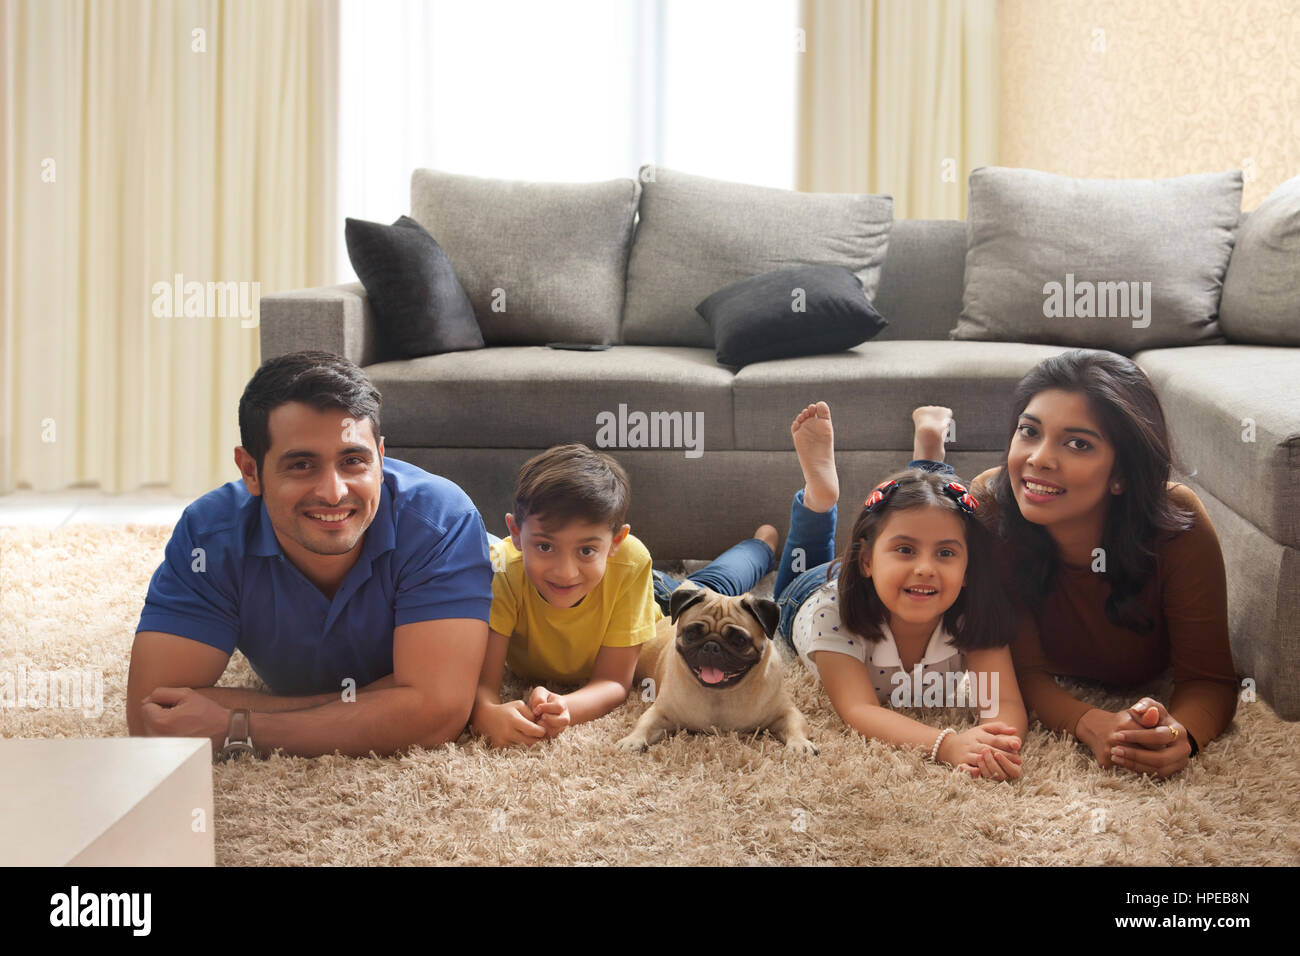 Happy family with pug posing on carpet in living room - Stock Image